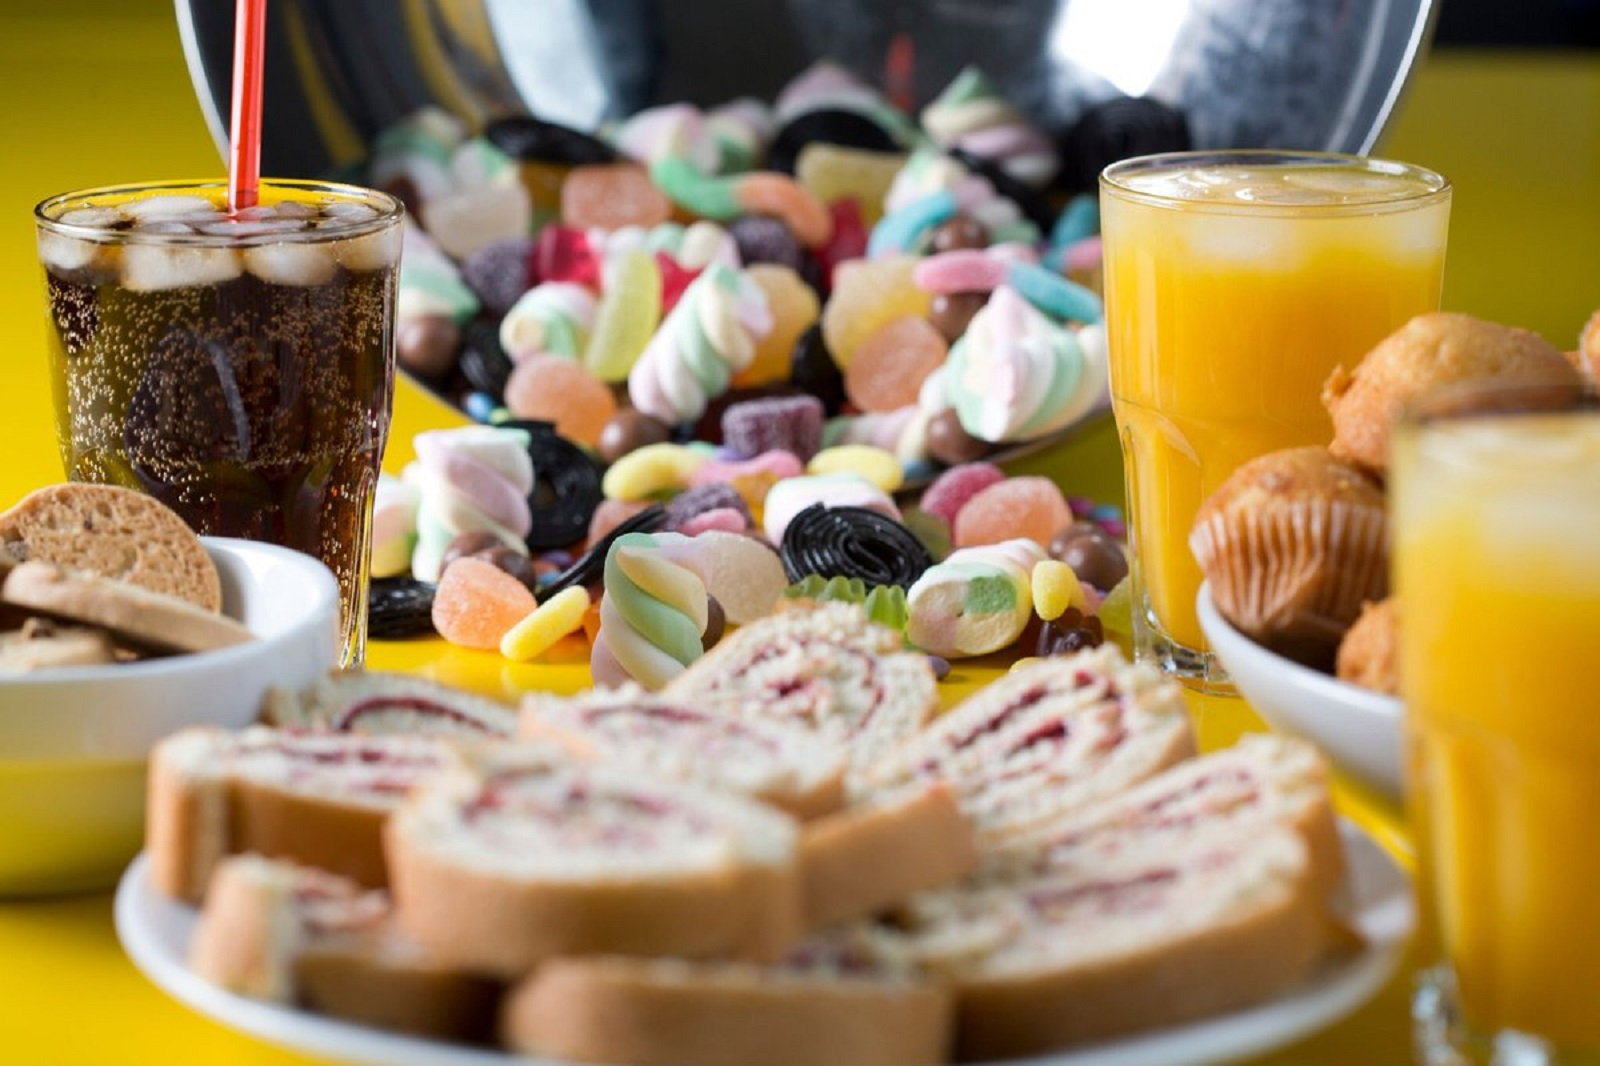 beverages and sweets with high amounts of sugars